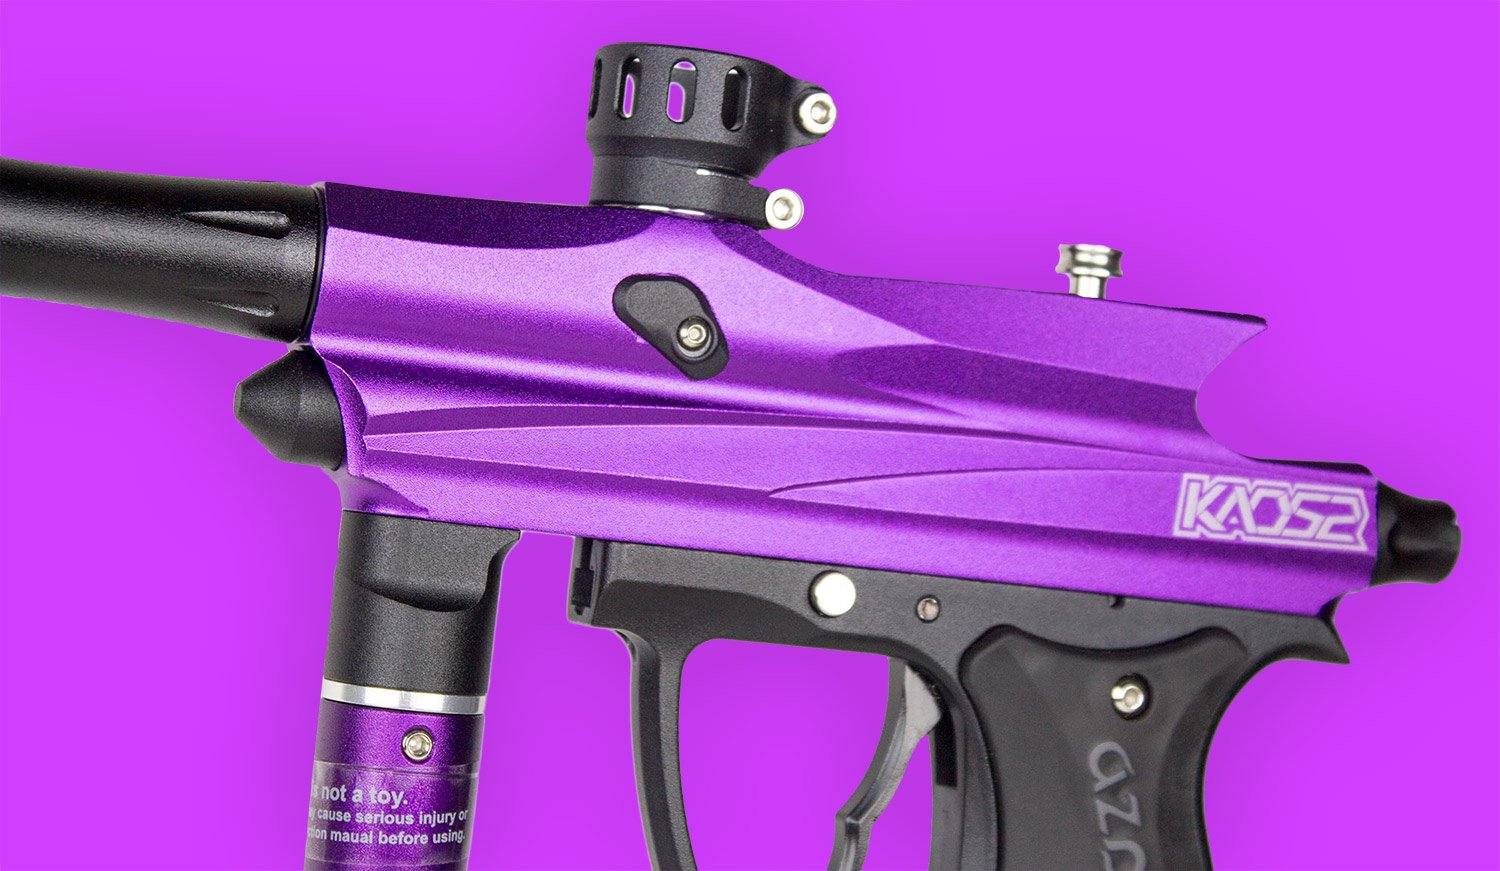 Azodin Kaos 2 Review: Awesome Entry Level Shooter